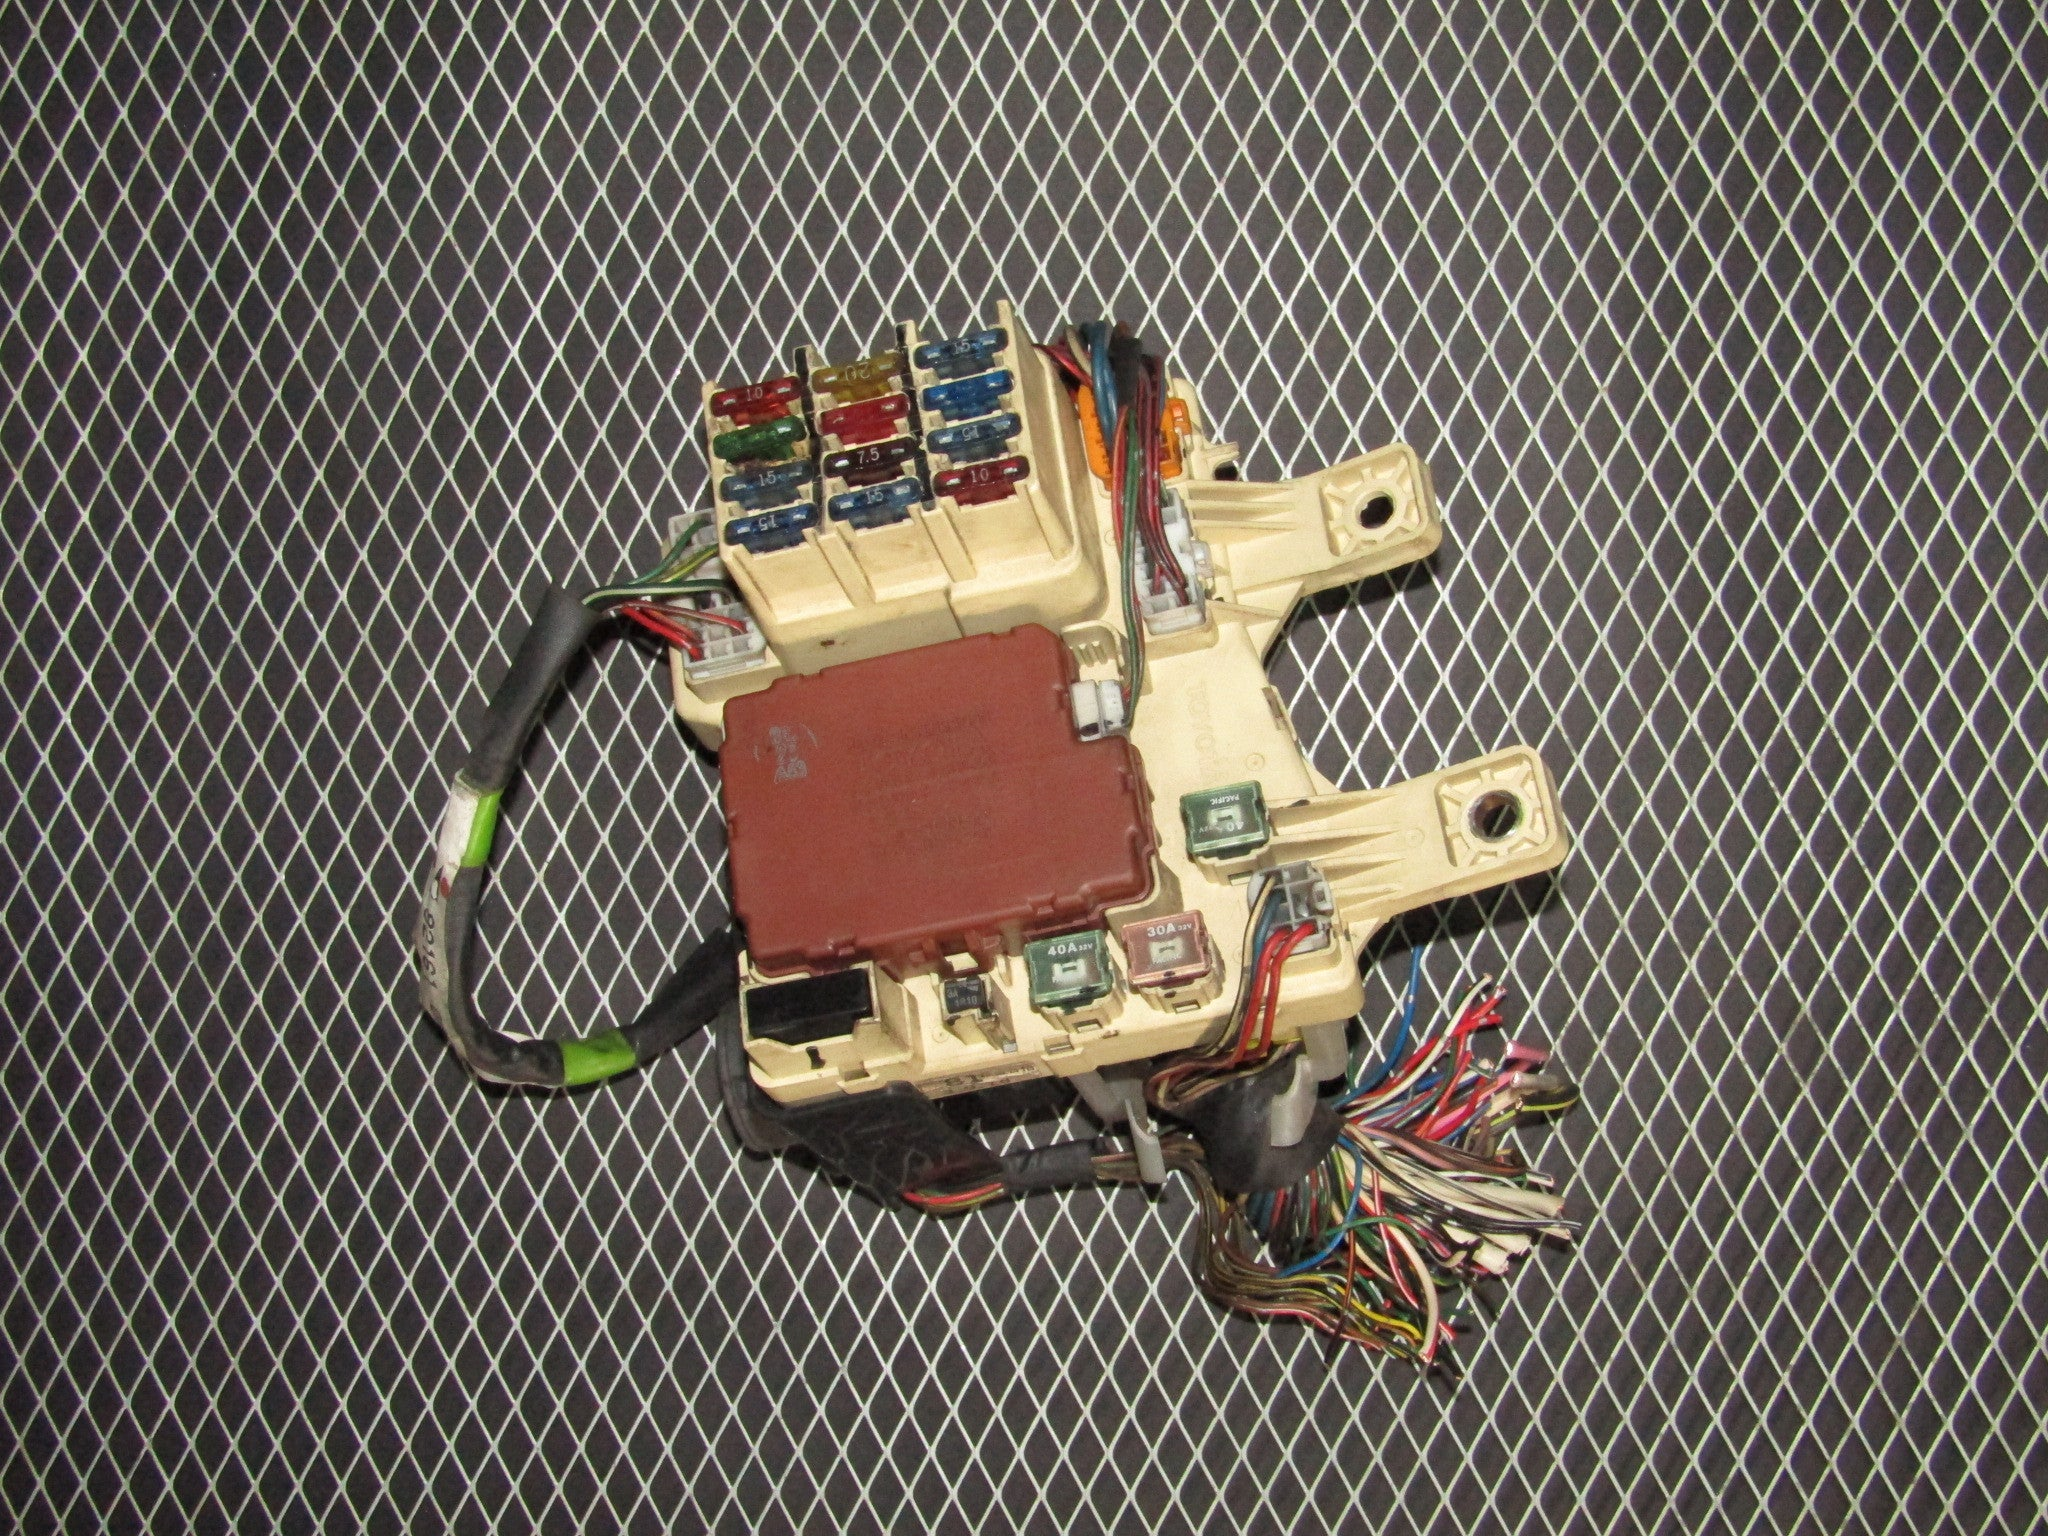 1992 Toyota Camry Fuse Box | Wiring Diagram on 92 toyota camry door, 92 toyota camry thermostat, 92 toyota camry water pump, 92 toyota camry power steering, 92 toyota camry speedometer, 92 toyota camry belt, 92 toyota camry battery, 92 toyota camry wheel bearing, 92 toyota camry engine, 92 toyota camry firing order, 92 toyota camry radiator, 92 toyota camry owners manual,